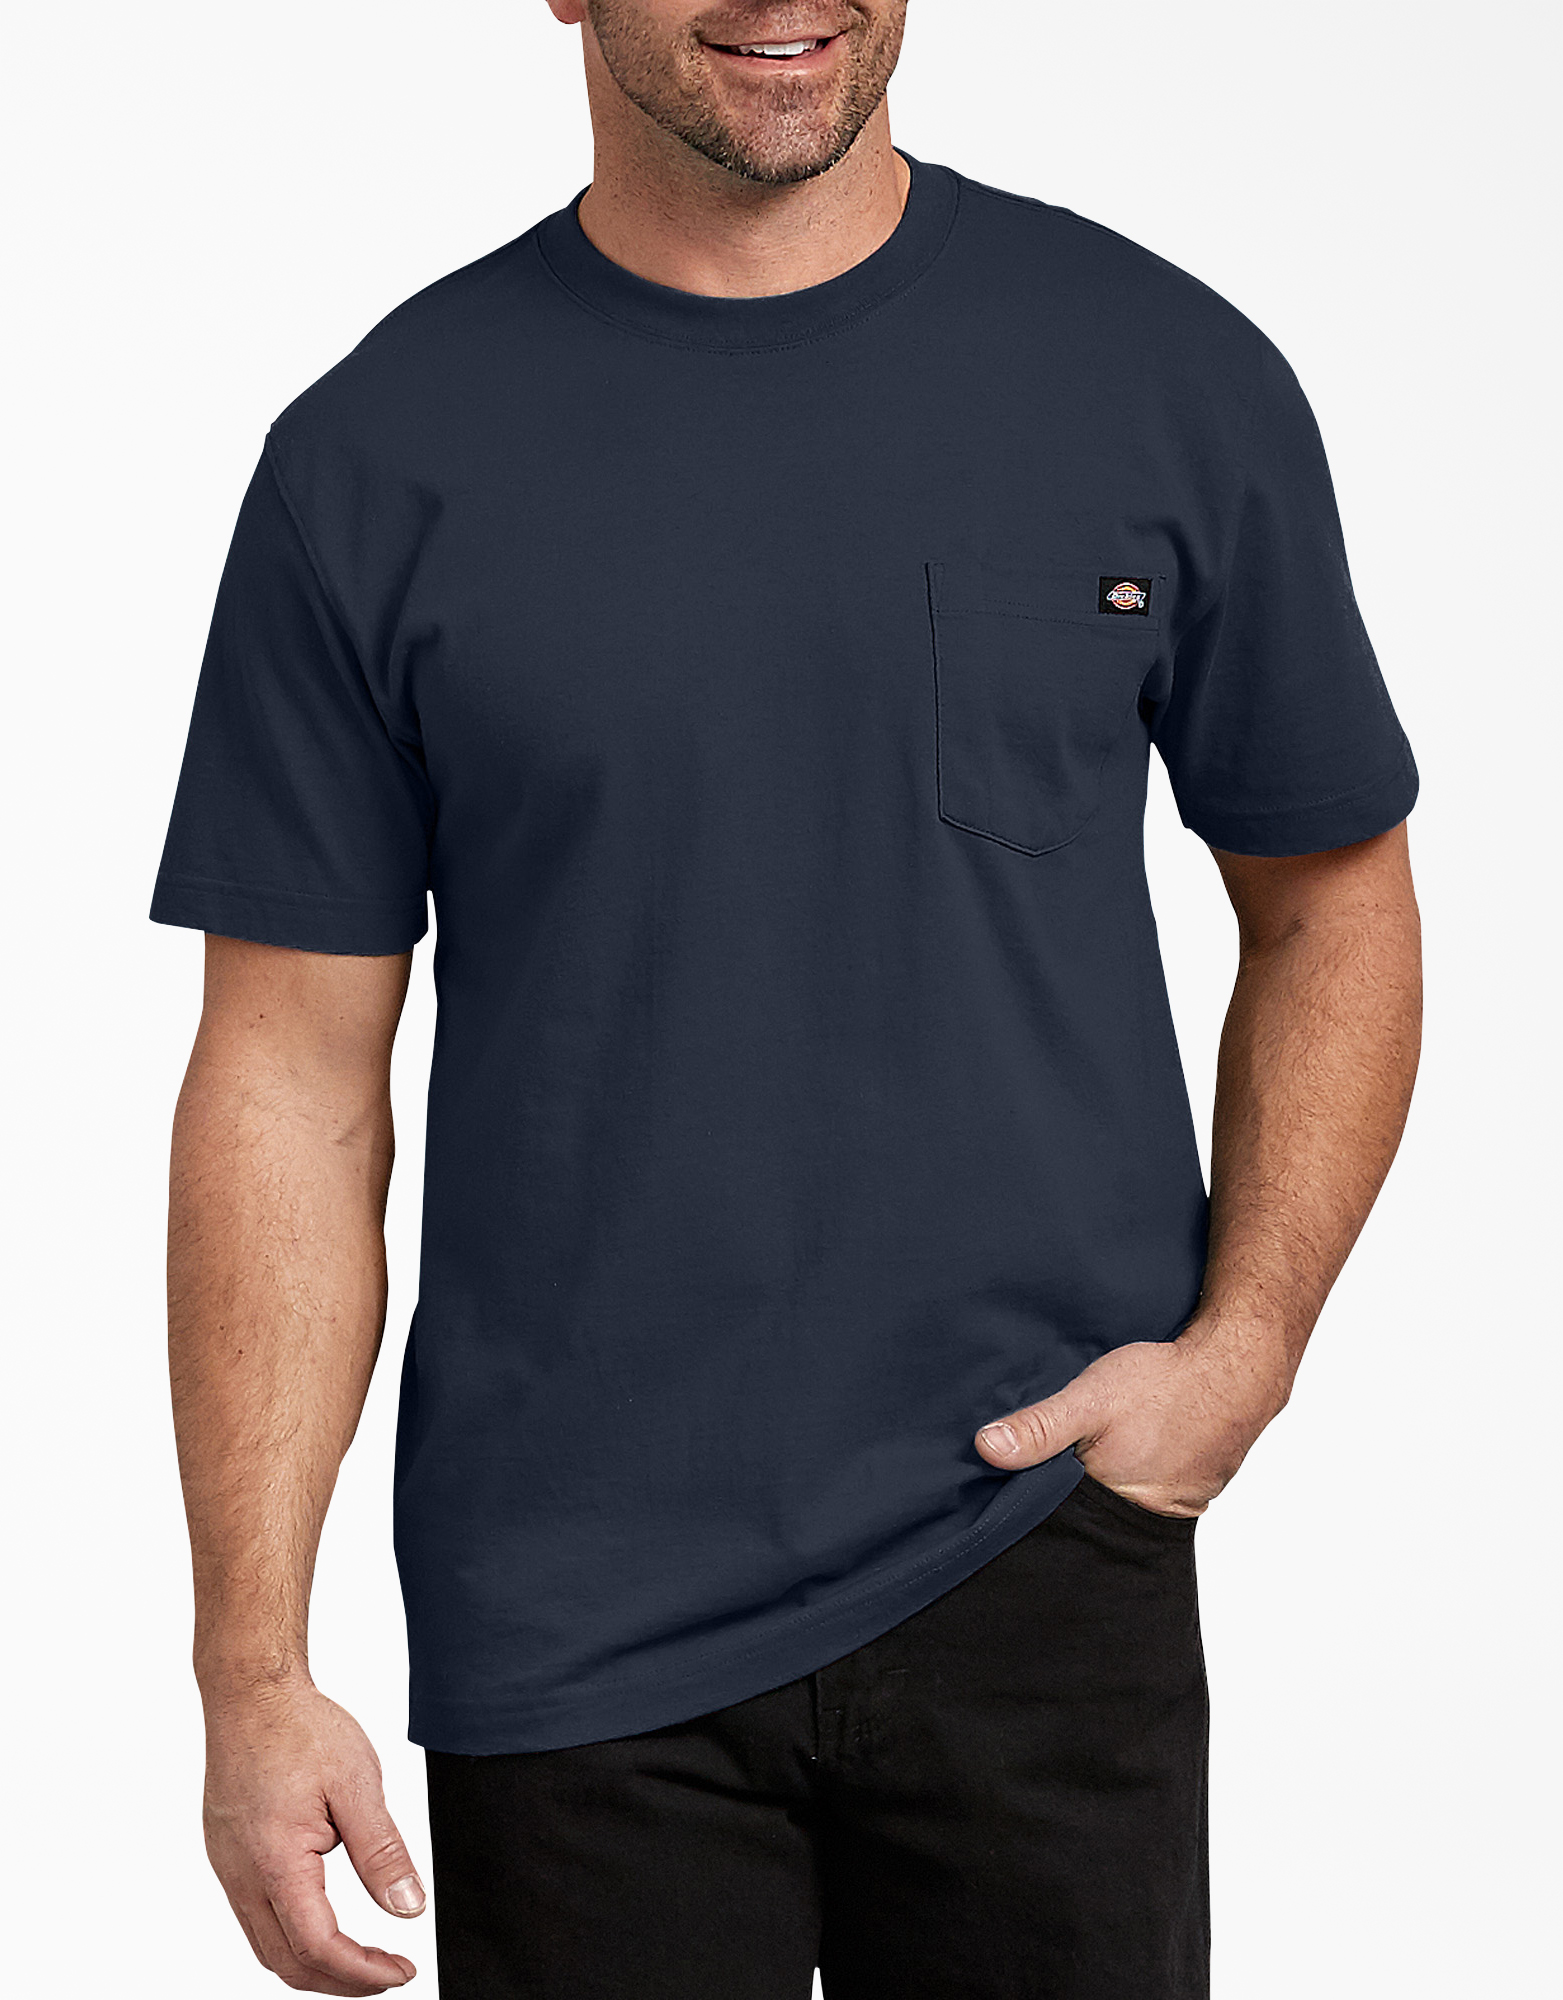 Short Sleeve Heavyweight T-Shirt - Dark Navy (DN)